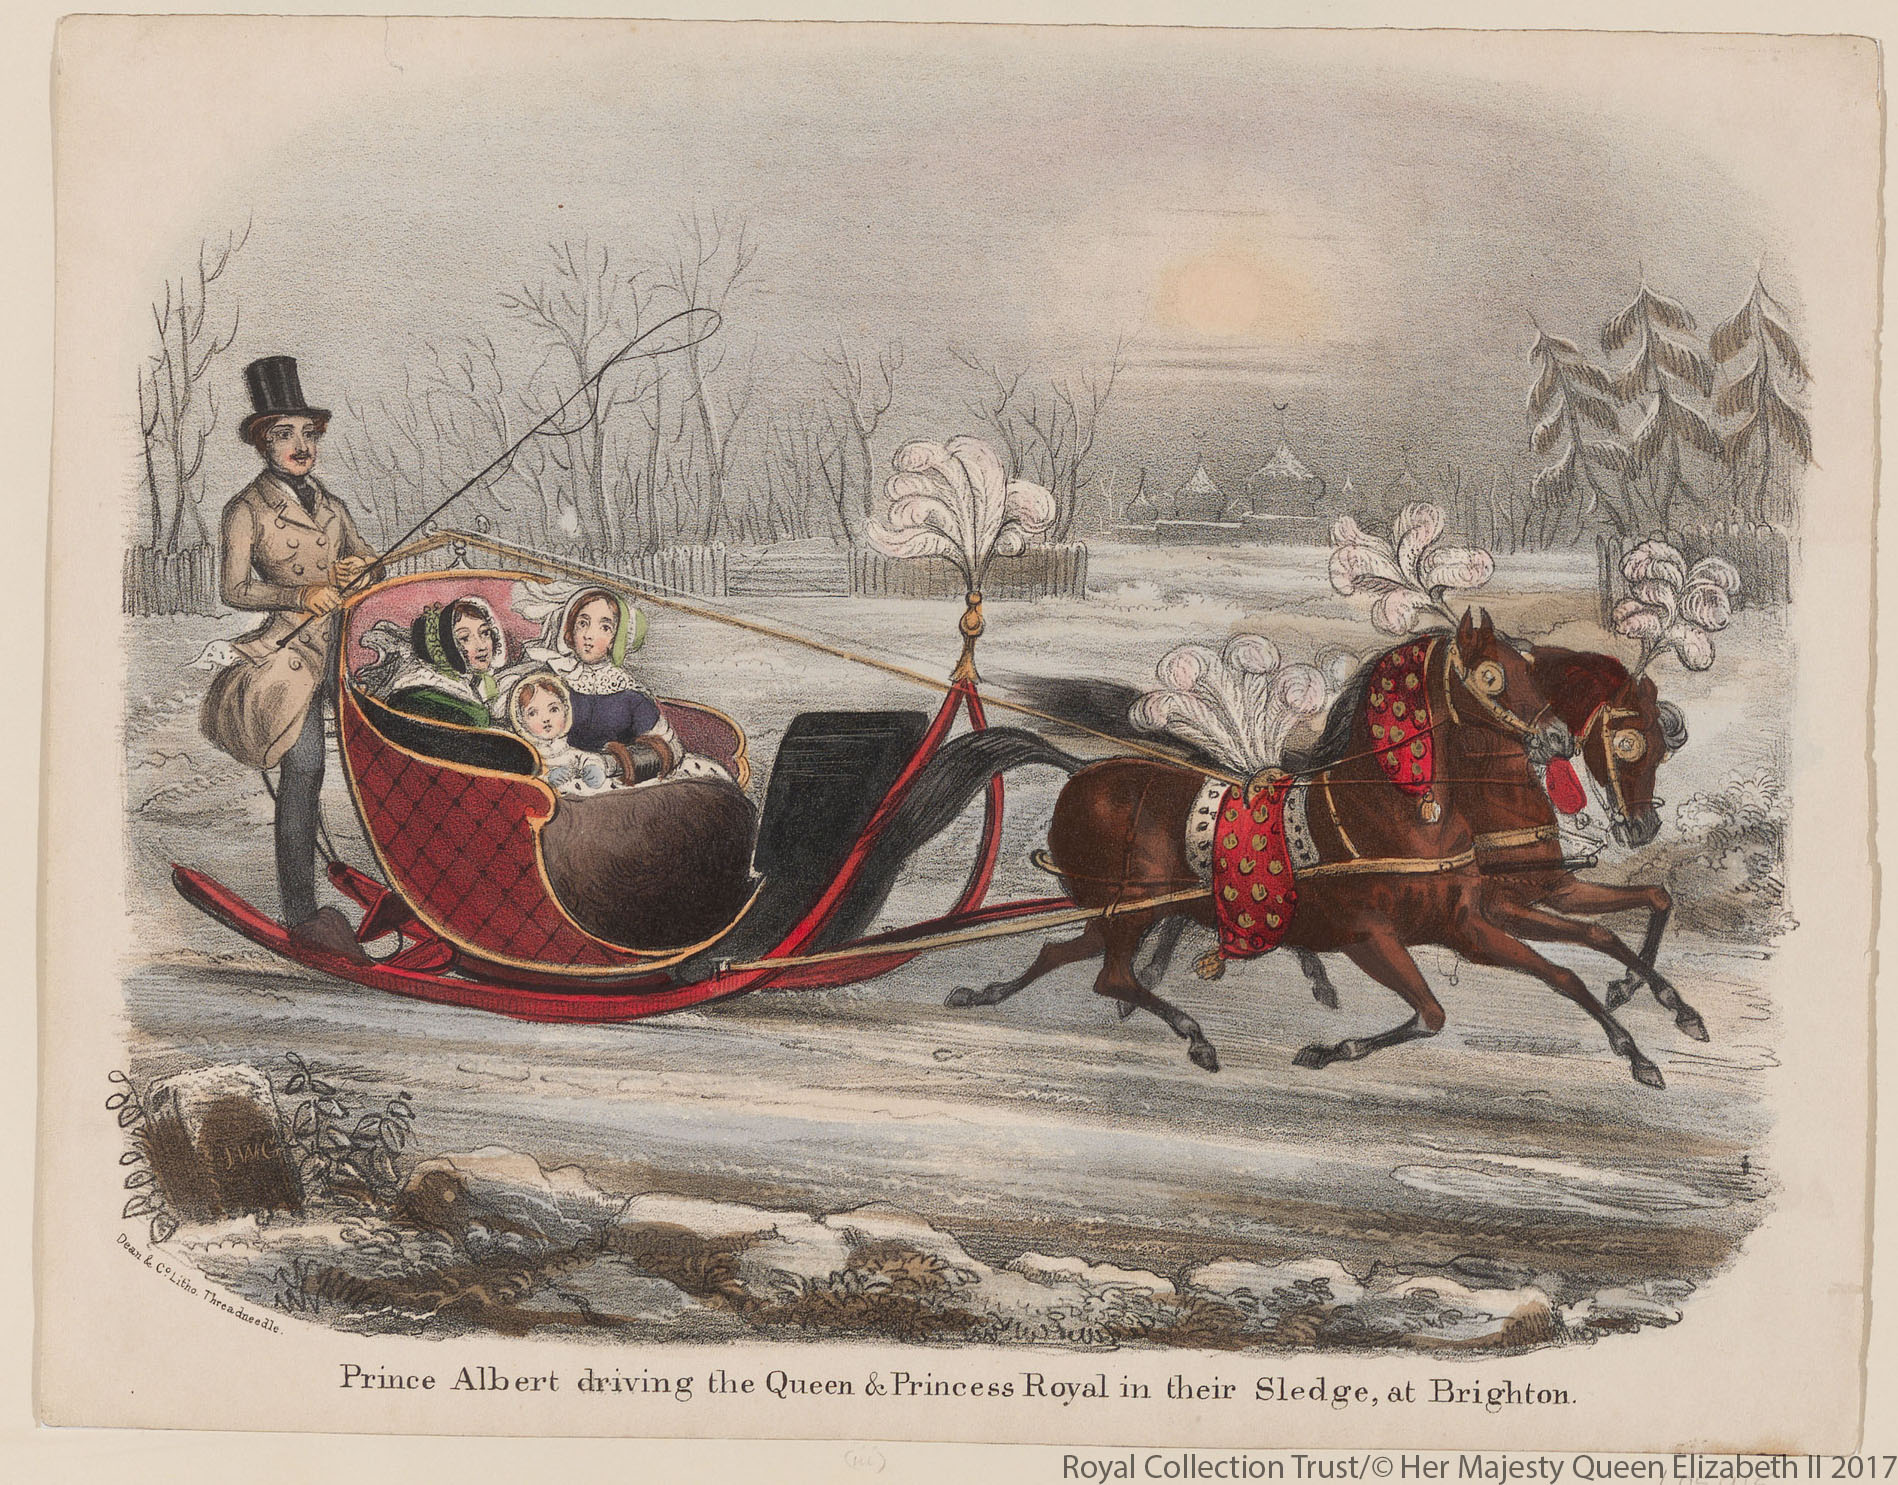 Prince Albert drives his family on a sledge